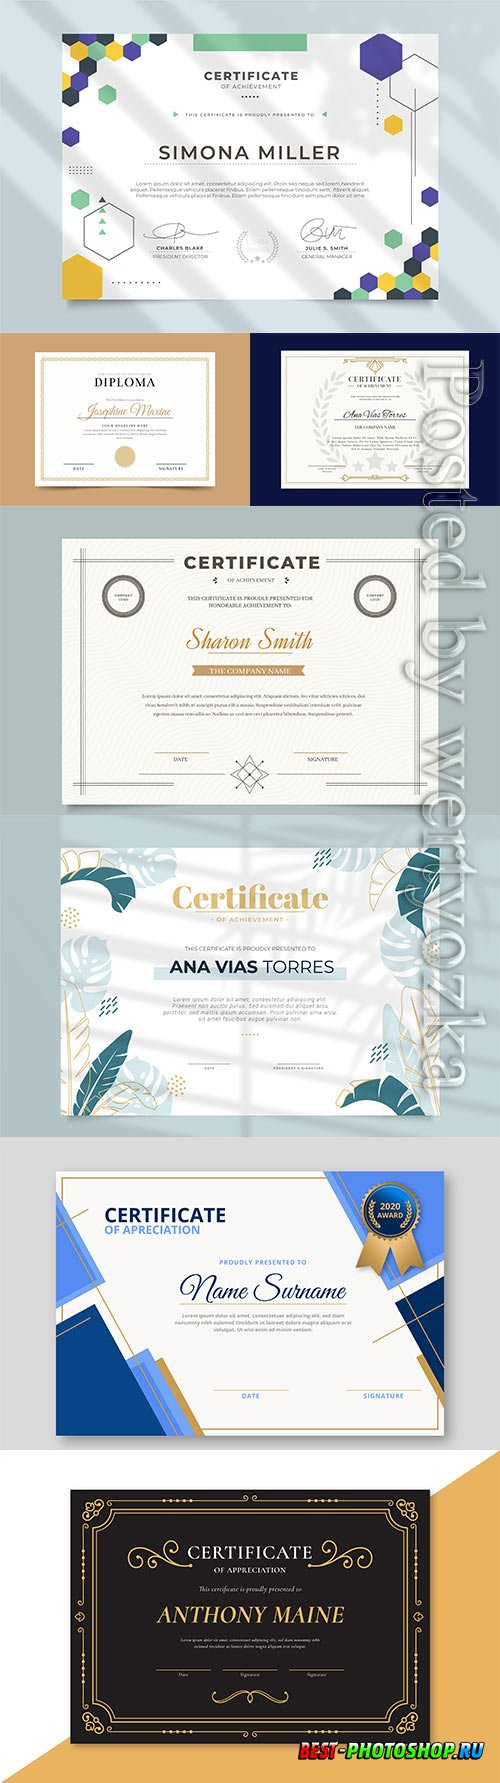 Diplomas and certificates in vector